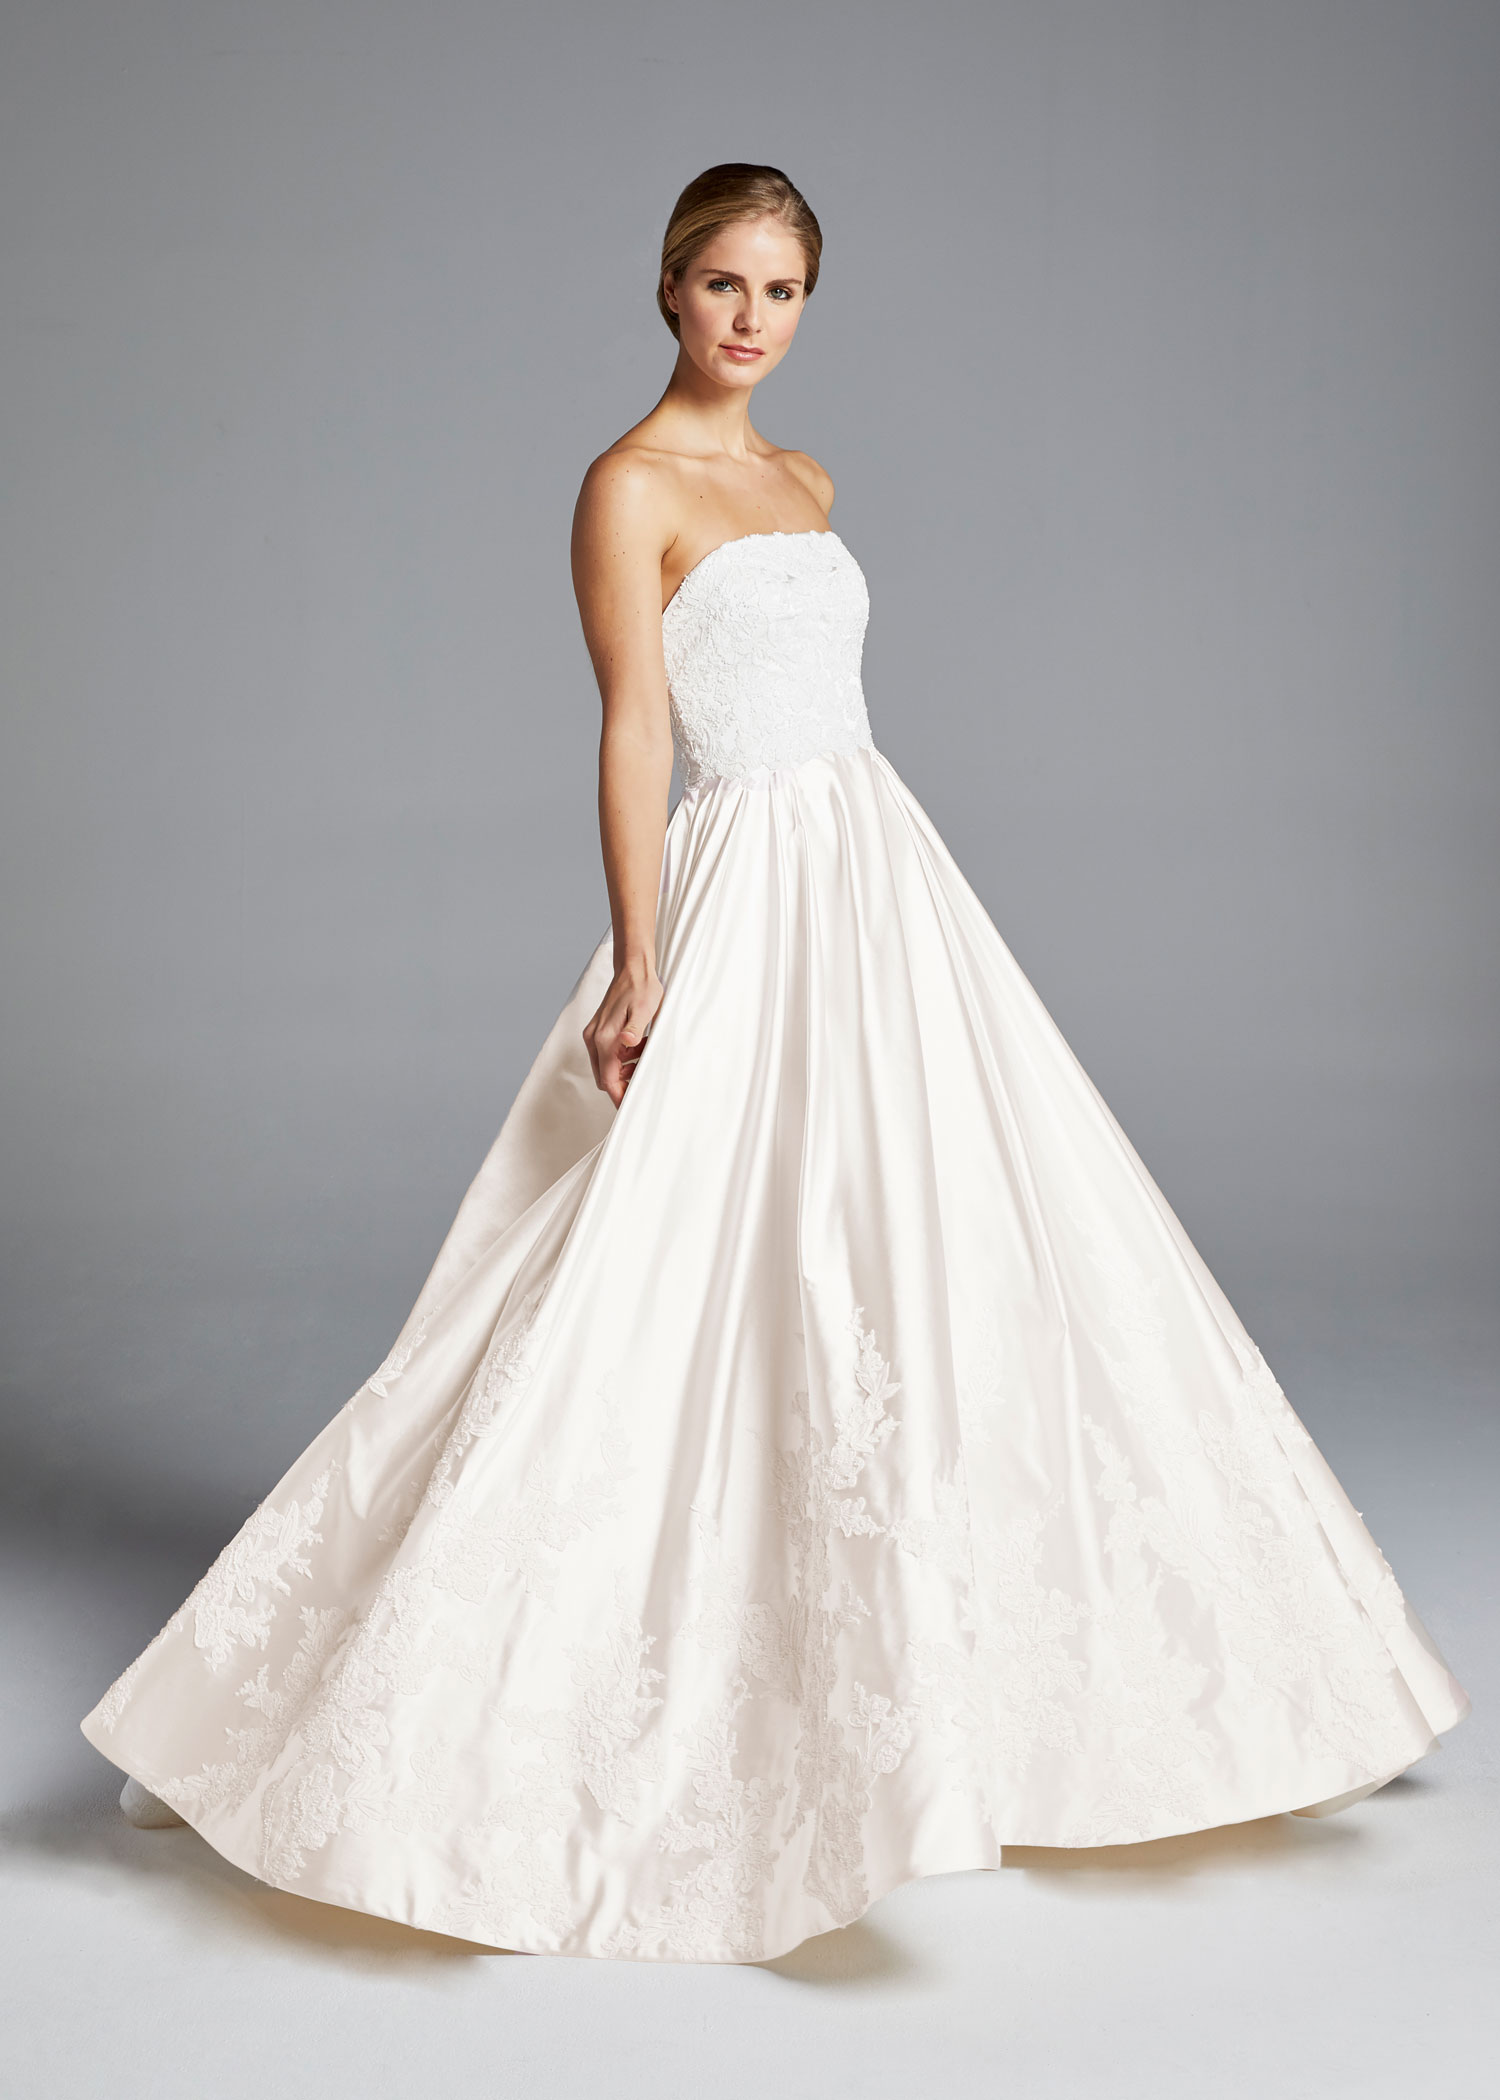 ee0696ab9a8 Anne Barge Spring 2019 collection strapless satin ball gown with pleats and  embroidery